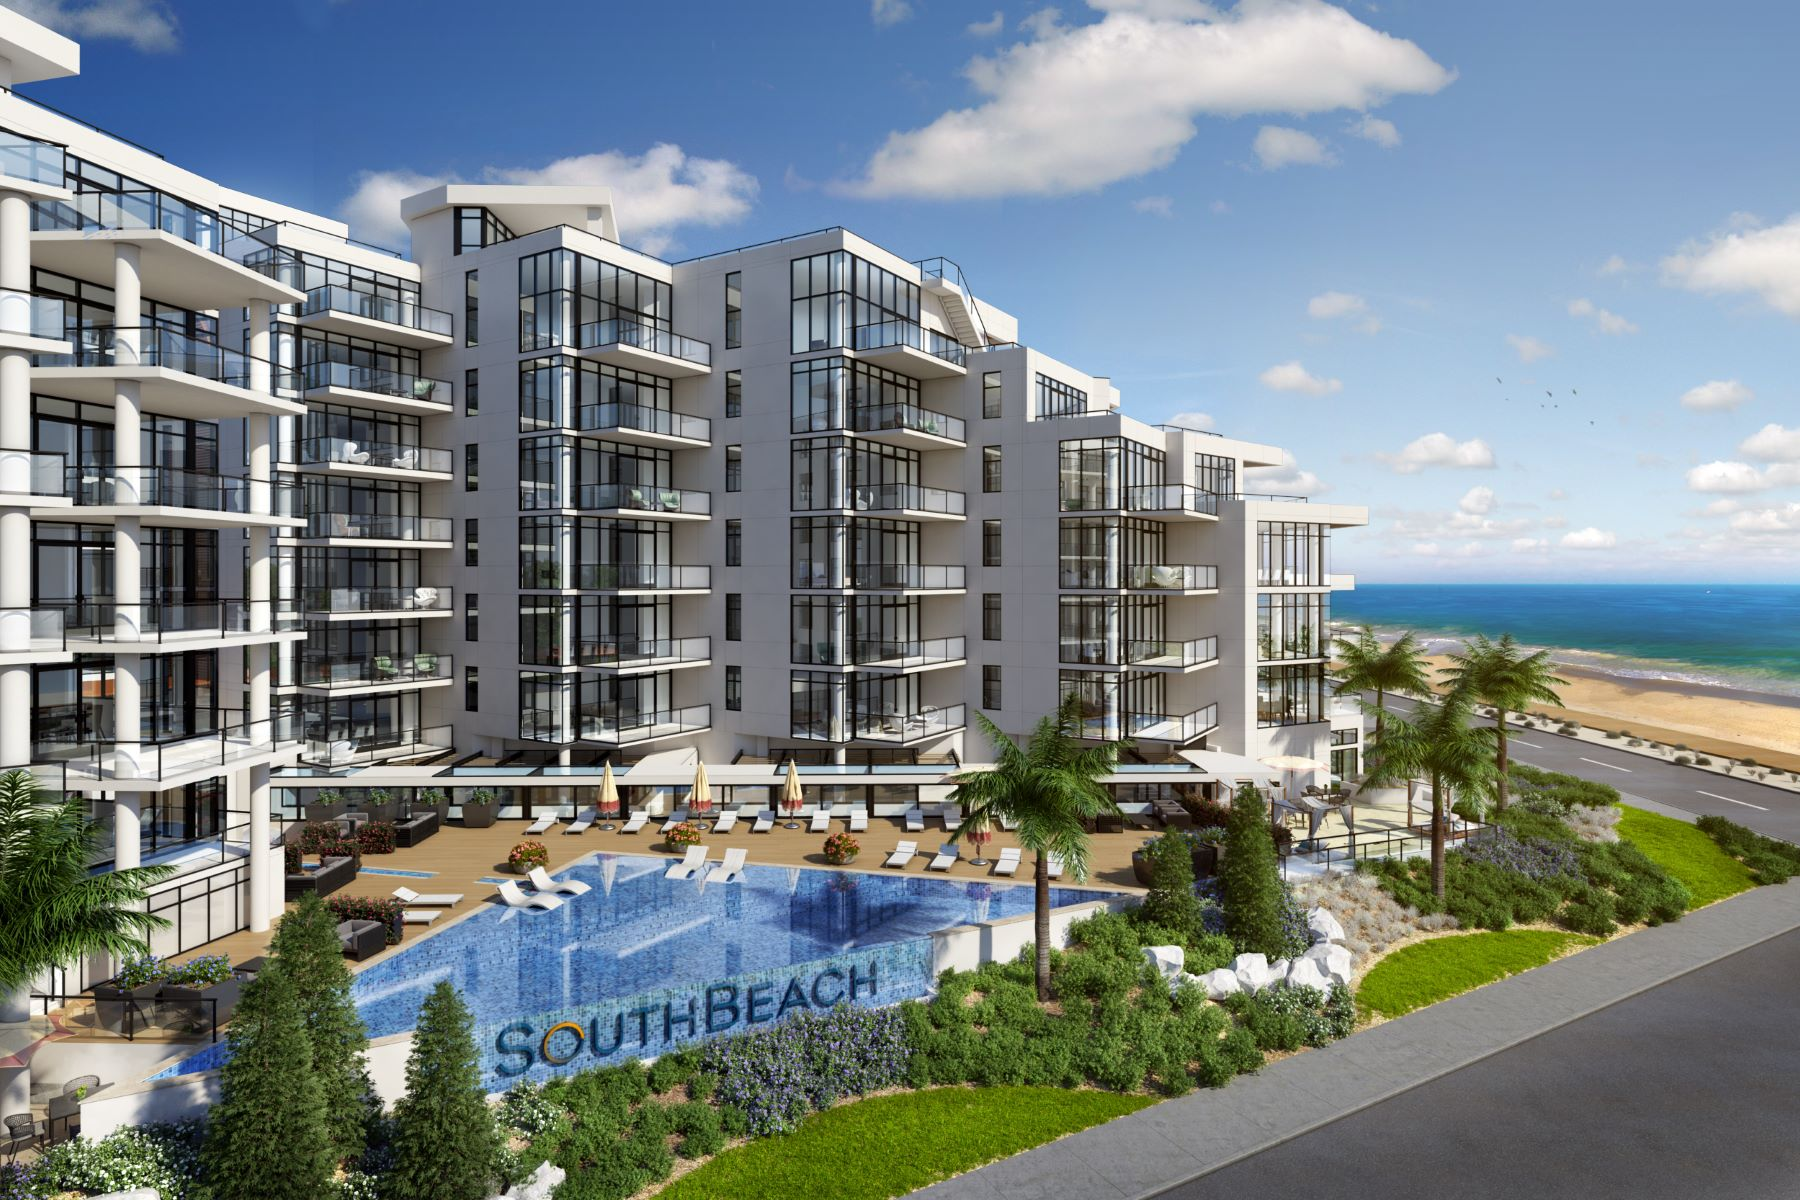 Condominiums for Sale at South Beach at Long Branch 350 Ocean Avenue 407 Long Branch, New Jersey 07740 United States